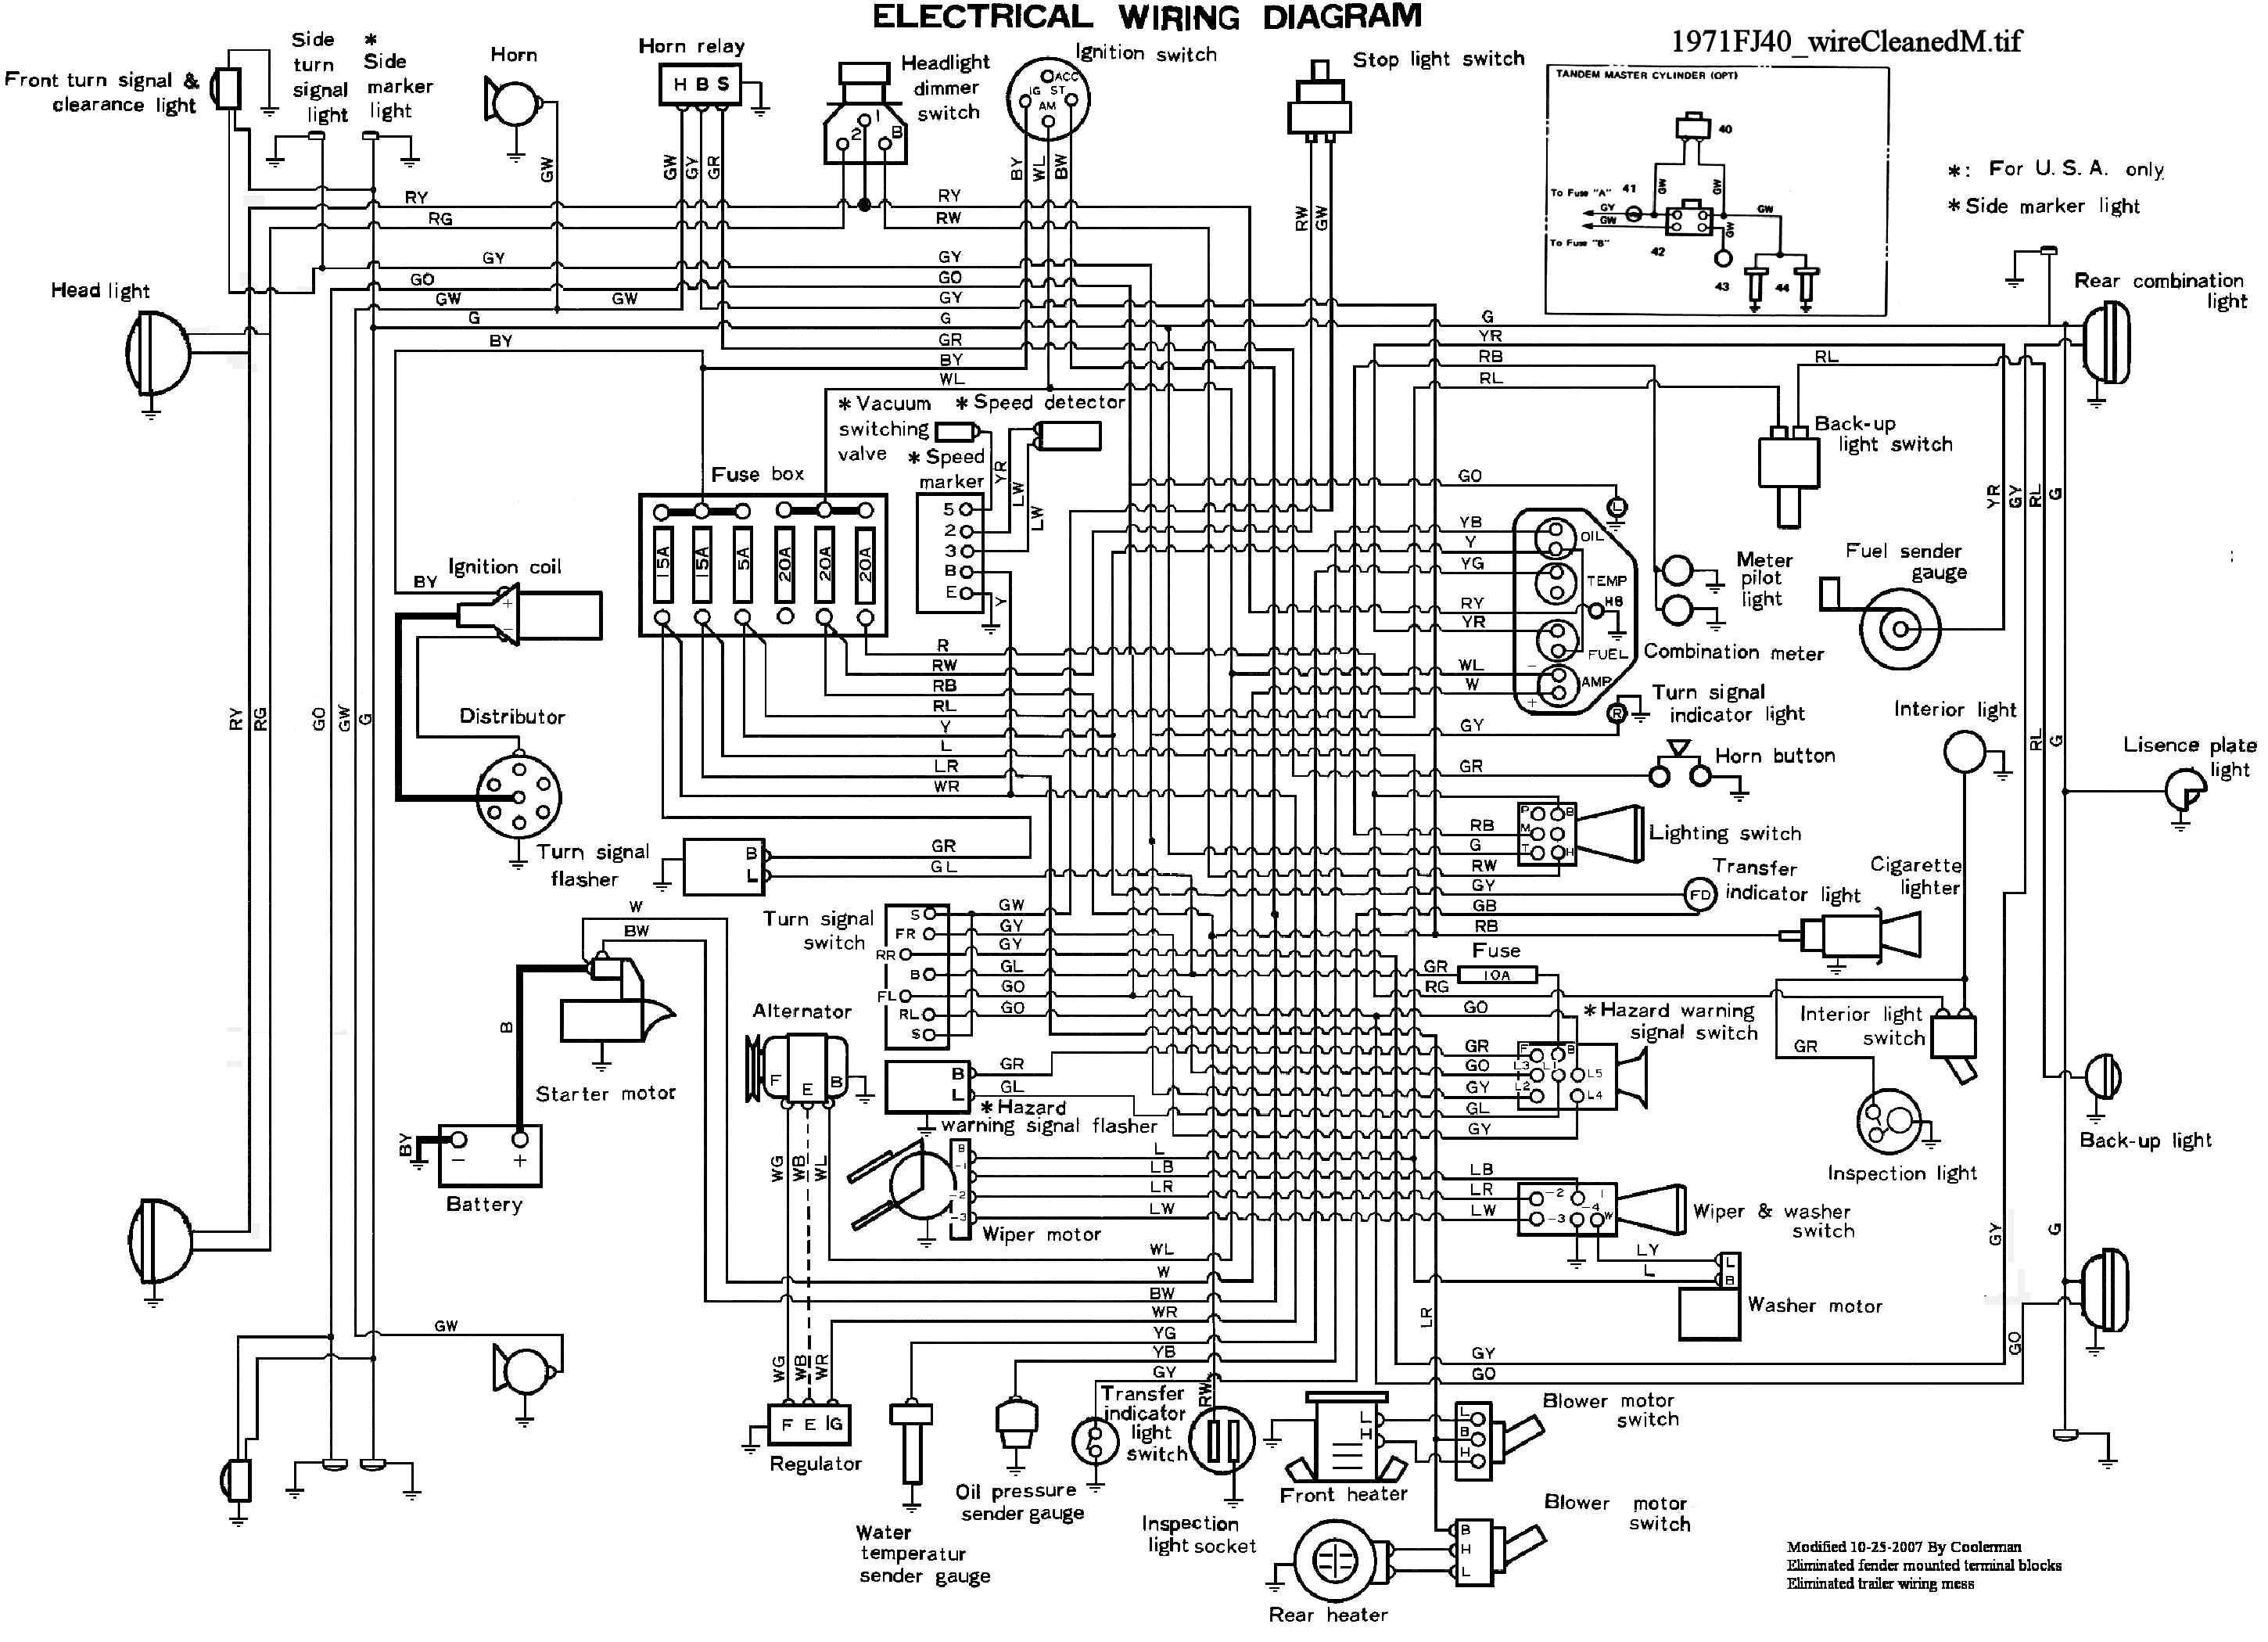 71fj40_wireCleanedM fj40 wiring diagram fj40 dash diagram \u2022 wiring diagrams j squared co 1998 Lincoln Navigator Wiring-Diagram at nearapp.co